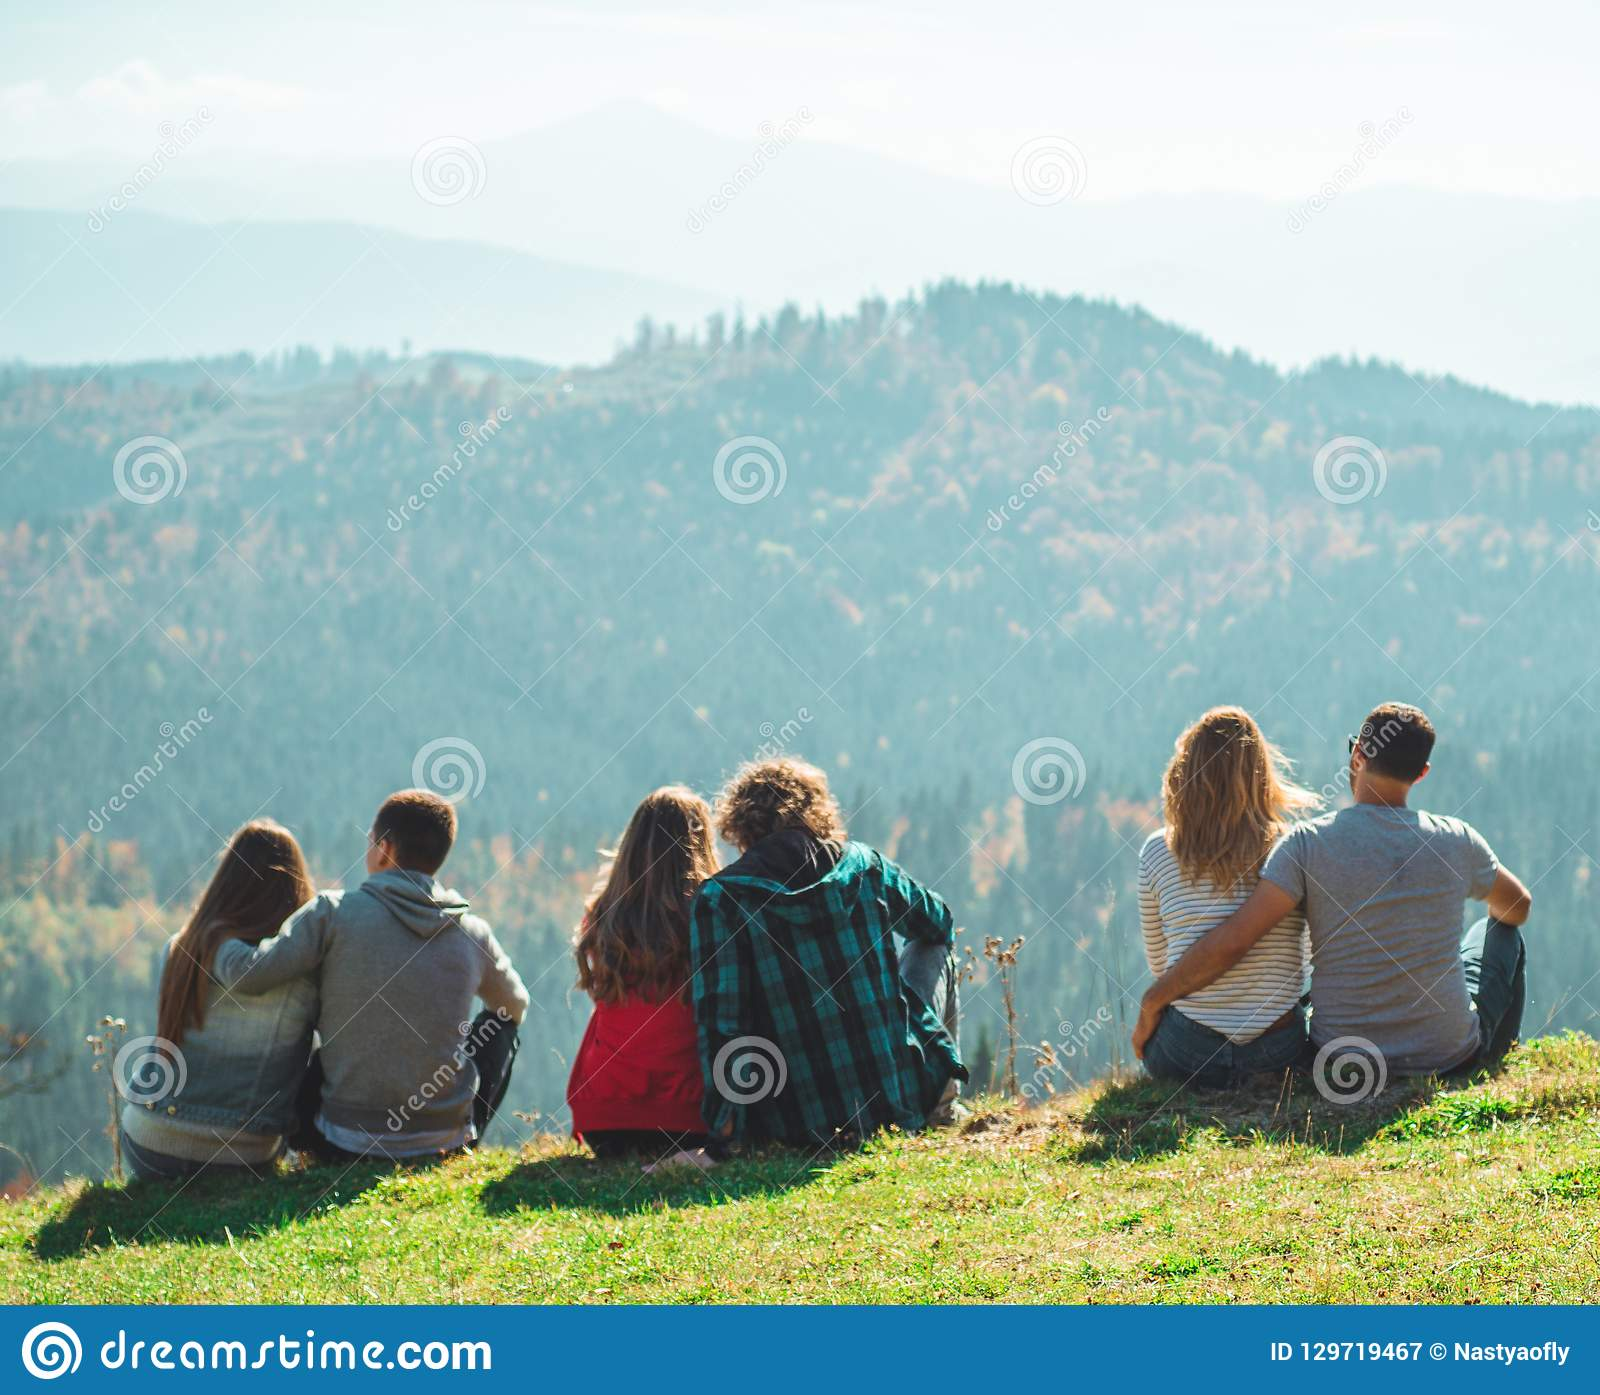 Some Couple travelers Boys and Girls sitting on cliff happy emotions Lifestyle concept Young family traveling active